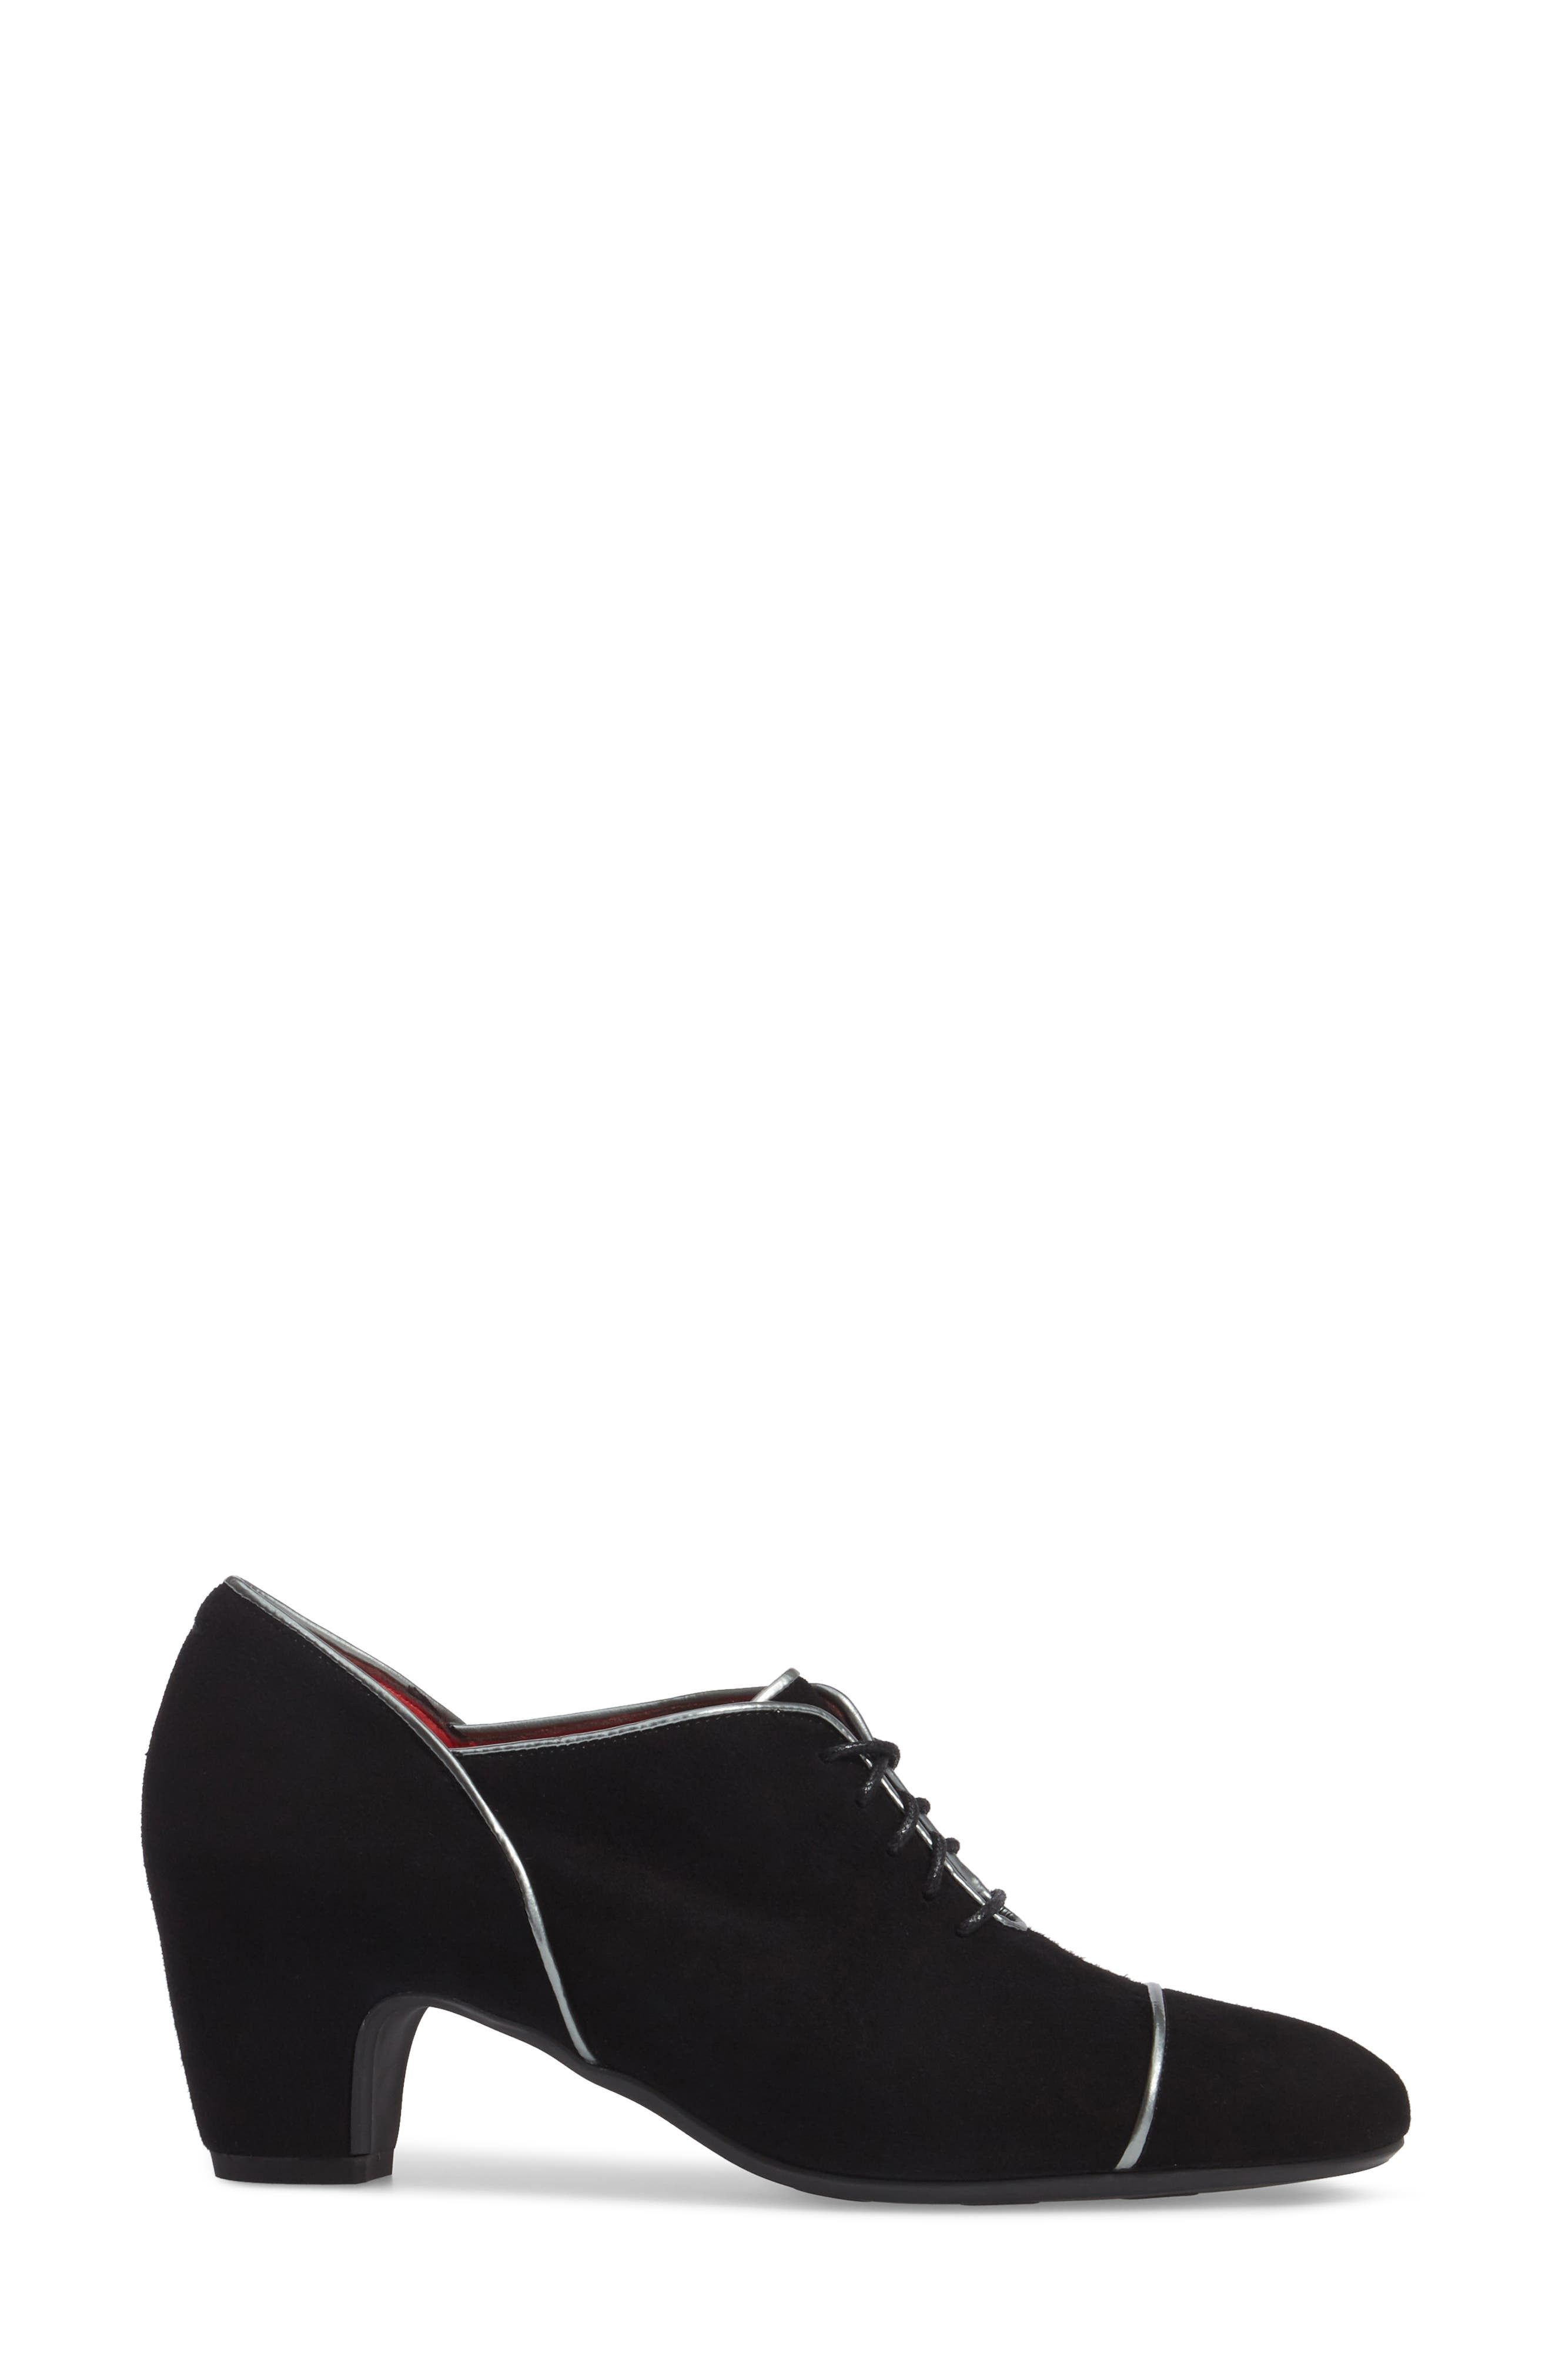 Lace-Up Pump,                             Alternate thumbnail 3, color,                             Black Suede/ Silver Leather